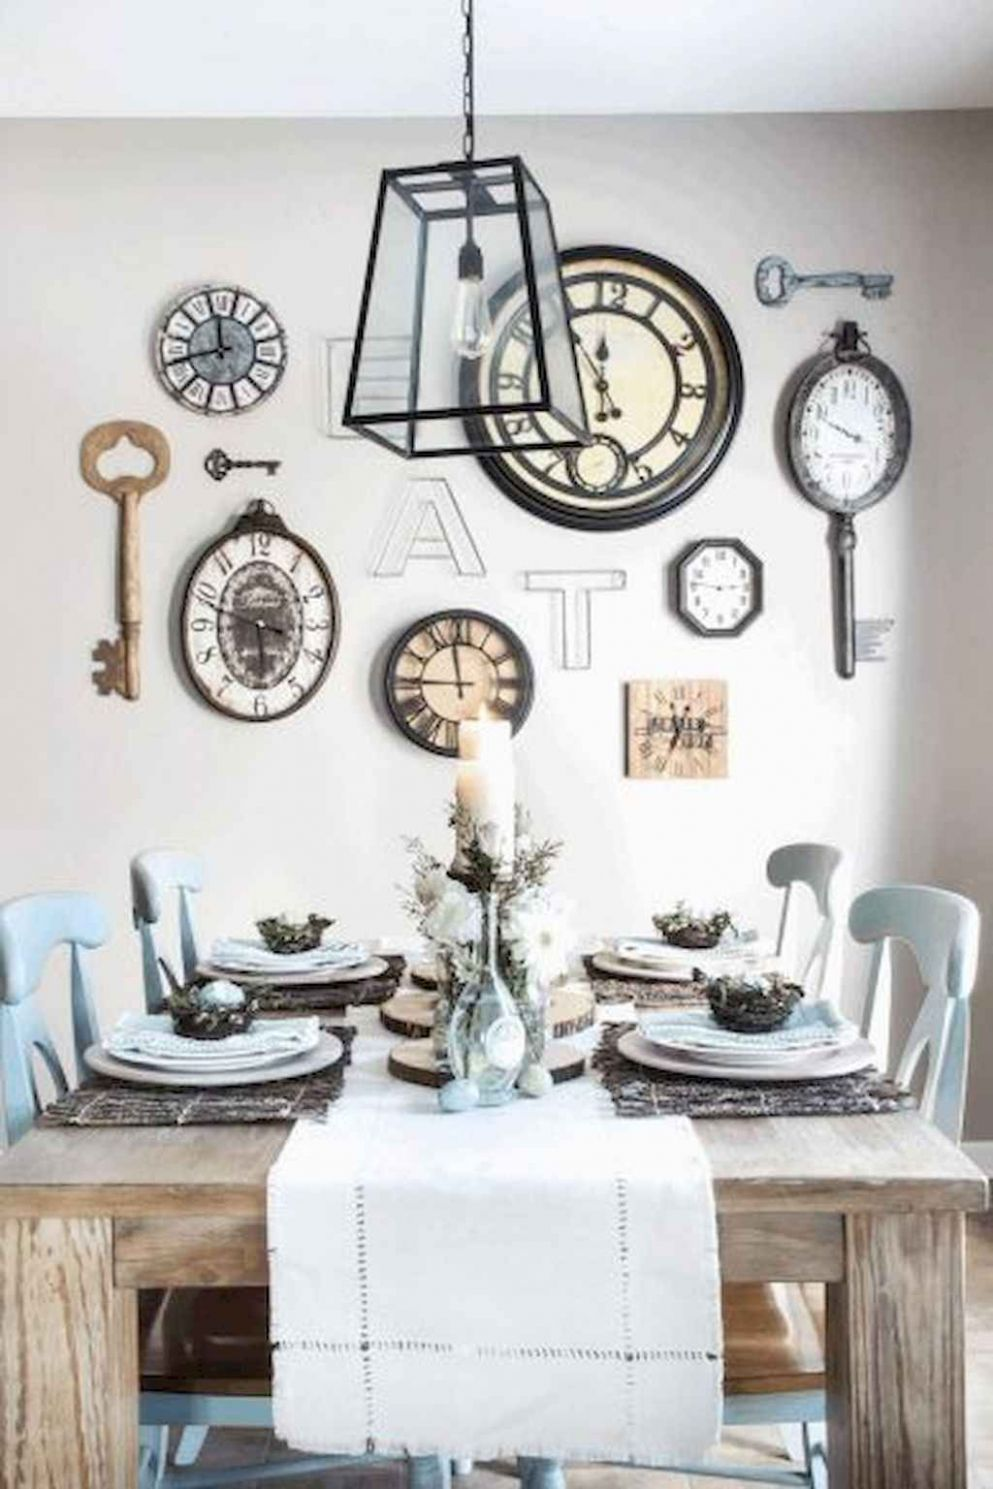 Top 10 Farmhouse Wall Decor Ideas - Page 10 of 10 - Afifah ...